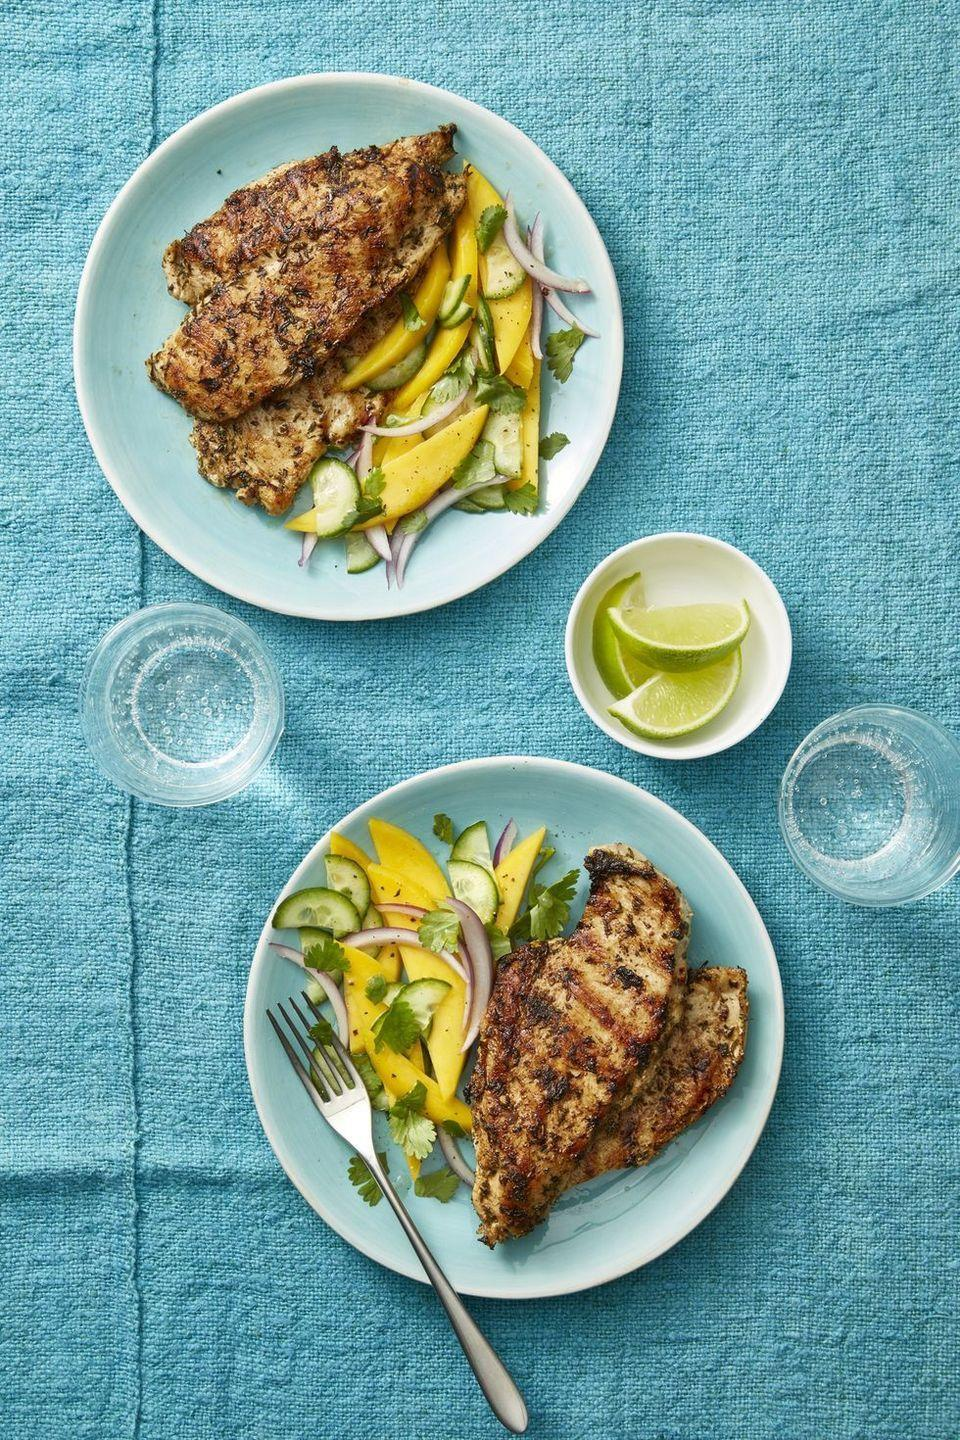 """<p>With so many flavors at hand — fresh citrus, the marriage of cilantro and spicy jerk notes, and more — you won't regret the fact that this dinner is free of hefty carbs. At 275 calories, you'll be shocked it's so flavorful in the first place! </p><p><a href=""""https://www.womansday.com/food-recipes/food-drinks/a21053525/grilled-jerk-chicken-with-mango-cucumber-salad-recipe/"""" rel=""""nofollow noopener"""" target=""""_blank"""" data-ylk=""""slk:Get the recipe from Woman's Day »"""" class=""""link rapid-noclick-resp""""><em>Get the recipe from Woman's Day » </em></a></p>"""